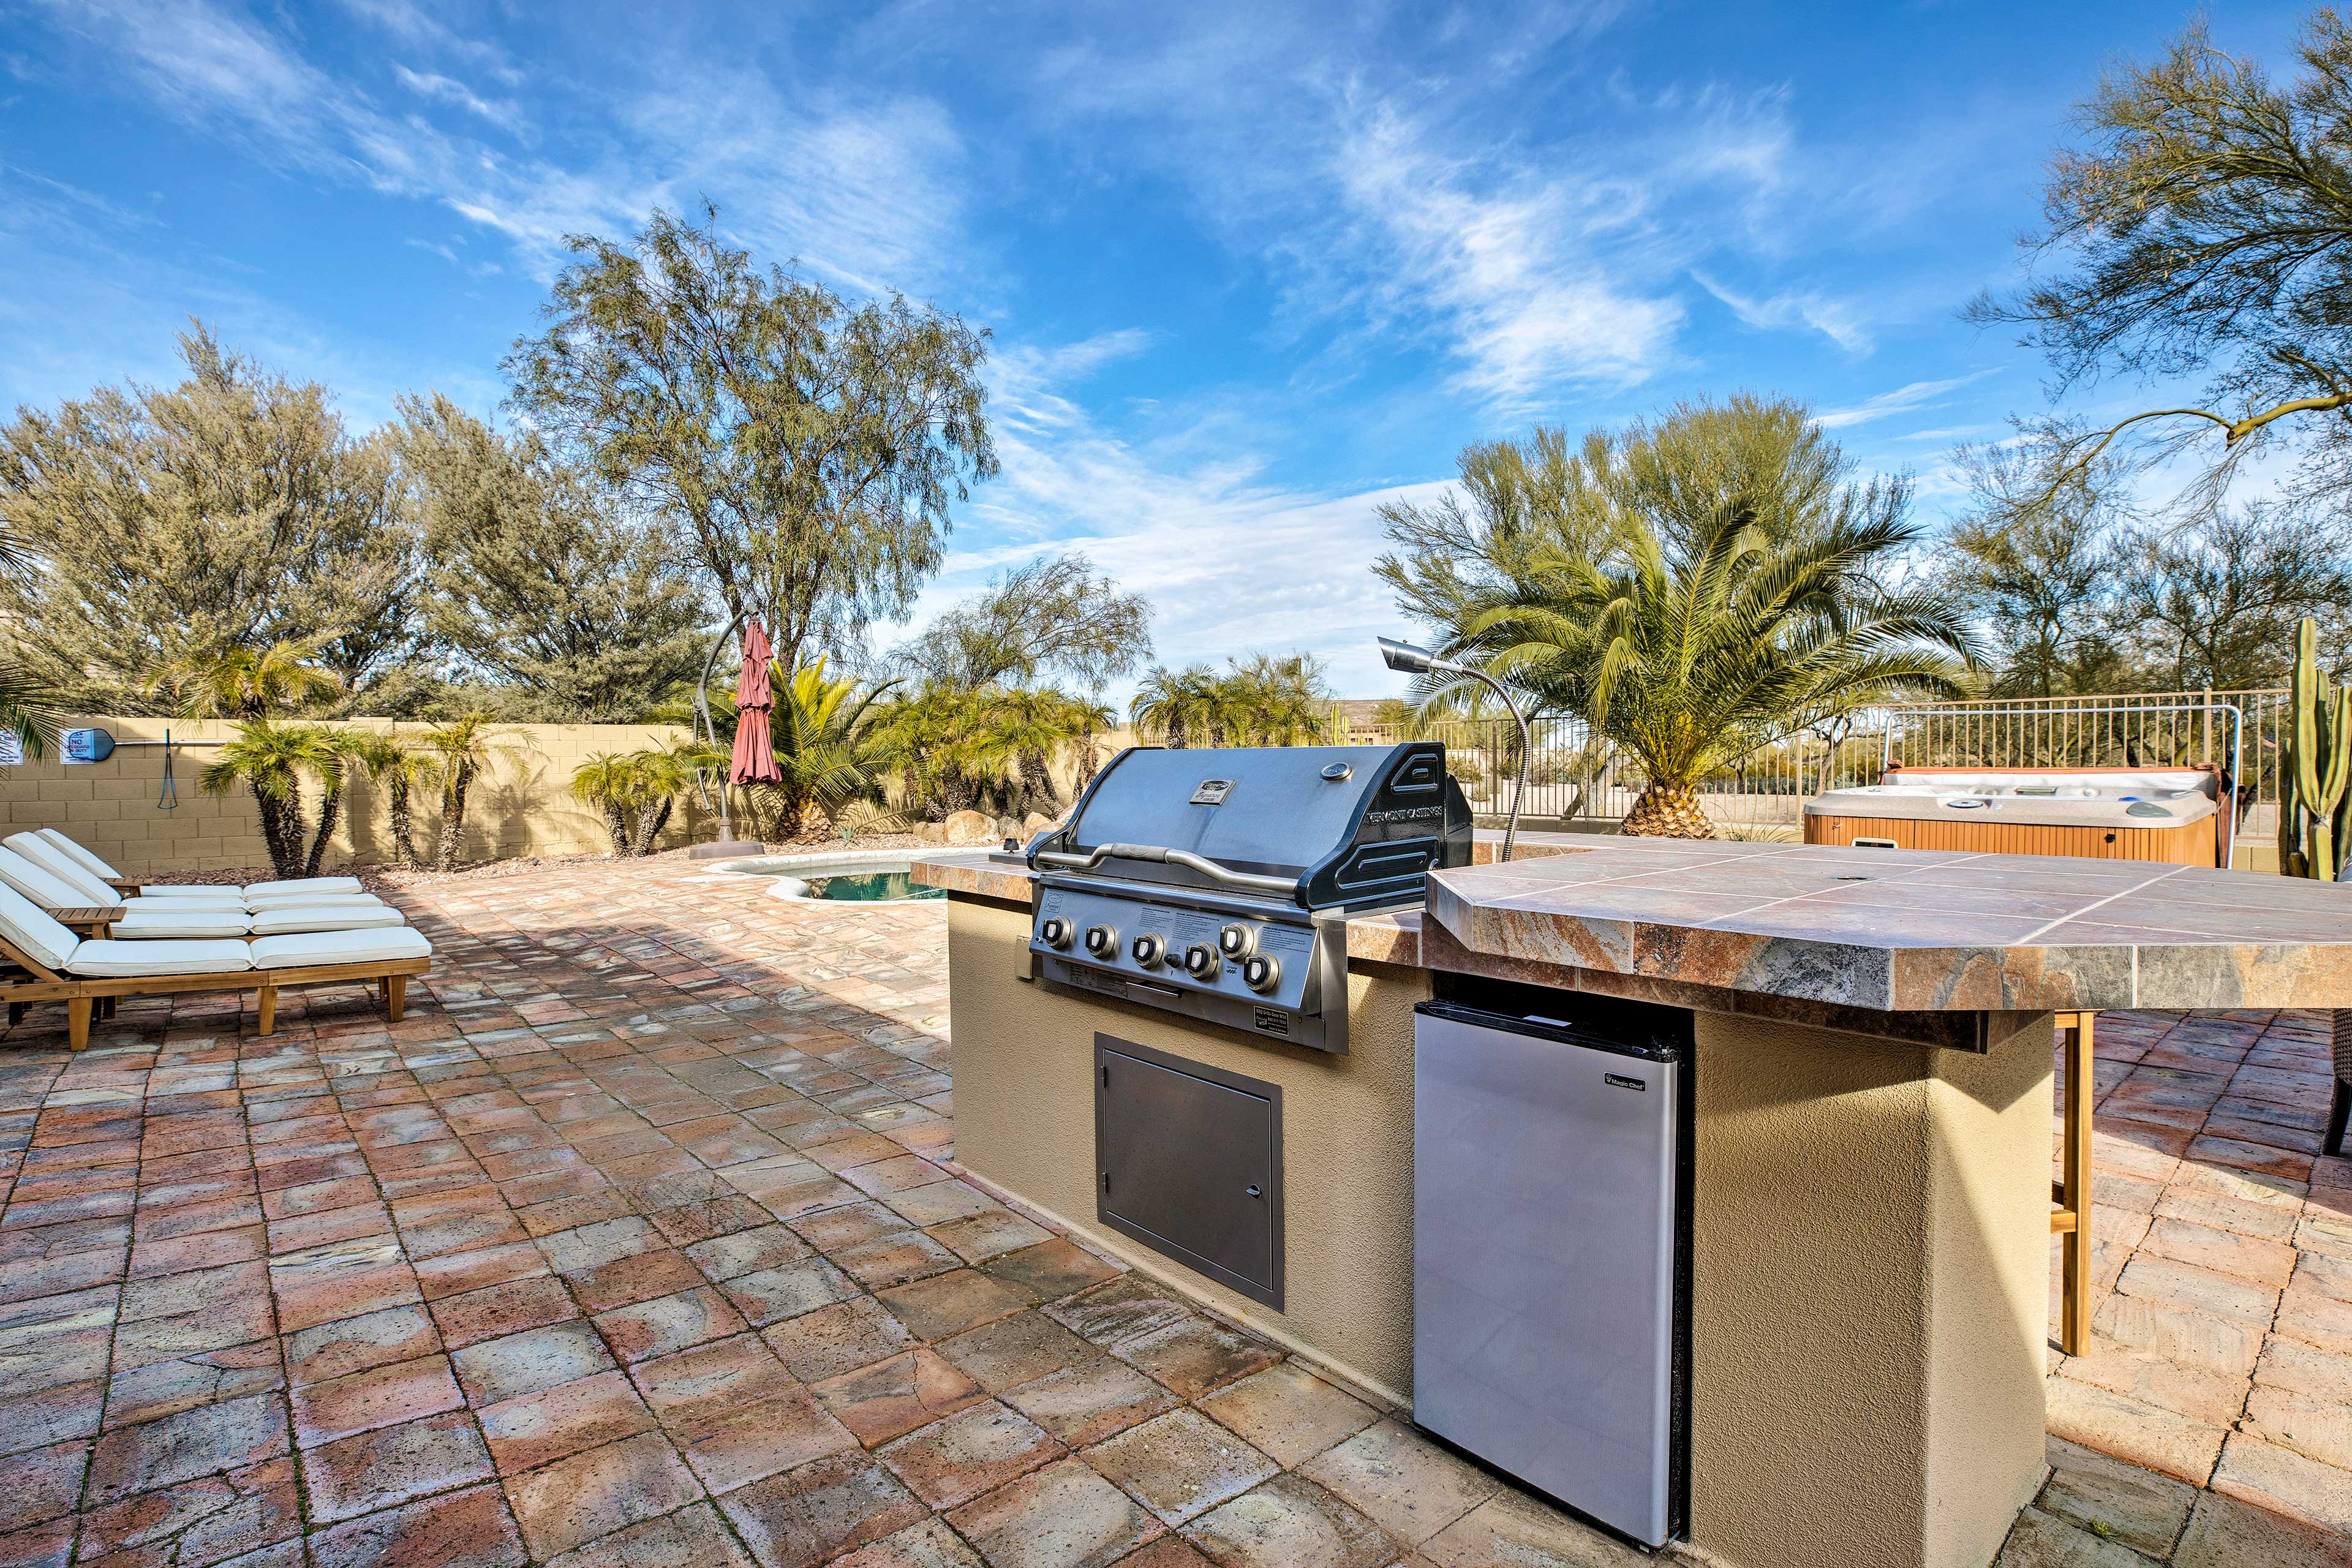 Fire up the state-of-the-art gas grill for an barbecue!